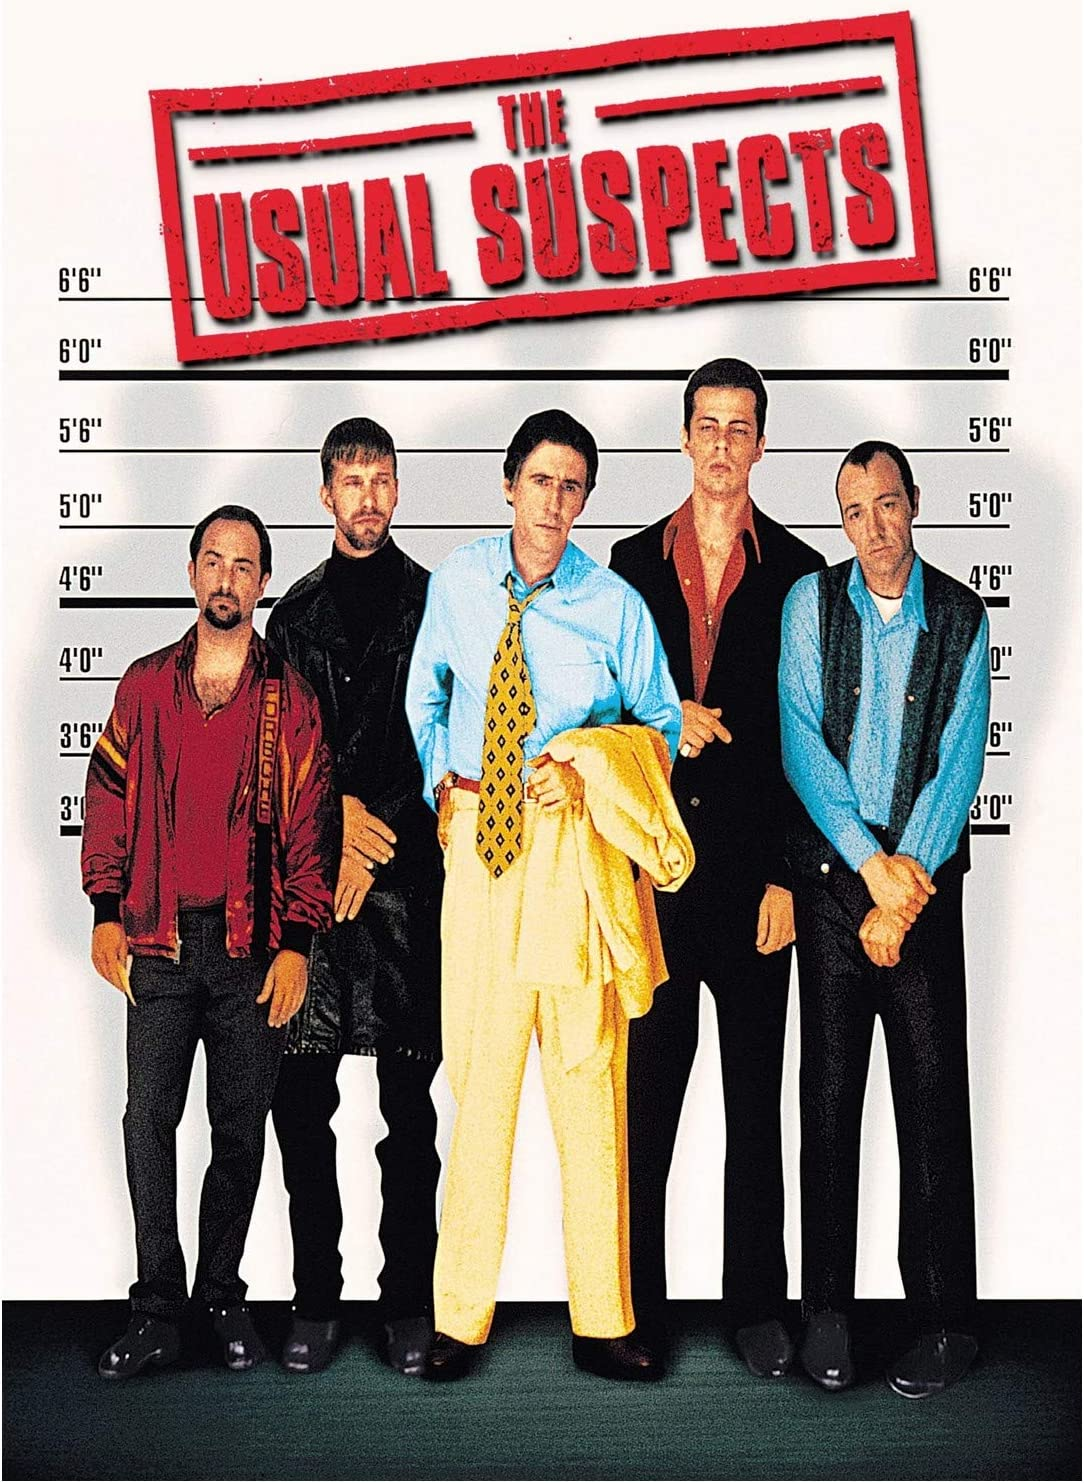 The Usual Suspects Movie Poster 24 x 36 Inches Full Sized Print Unframed Ready for Display